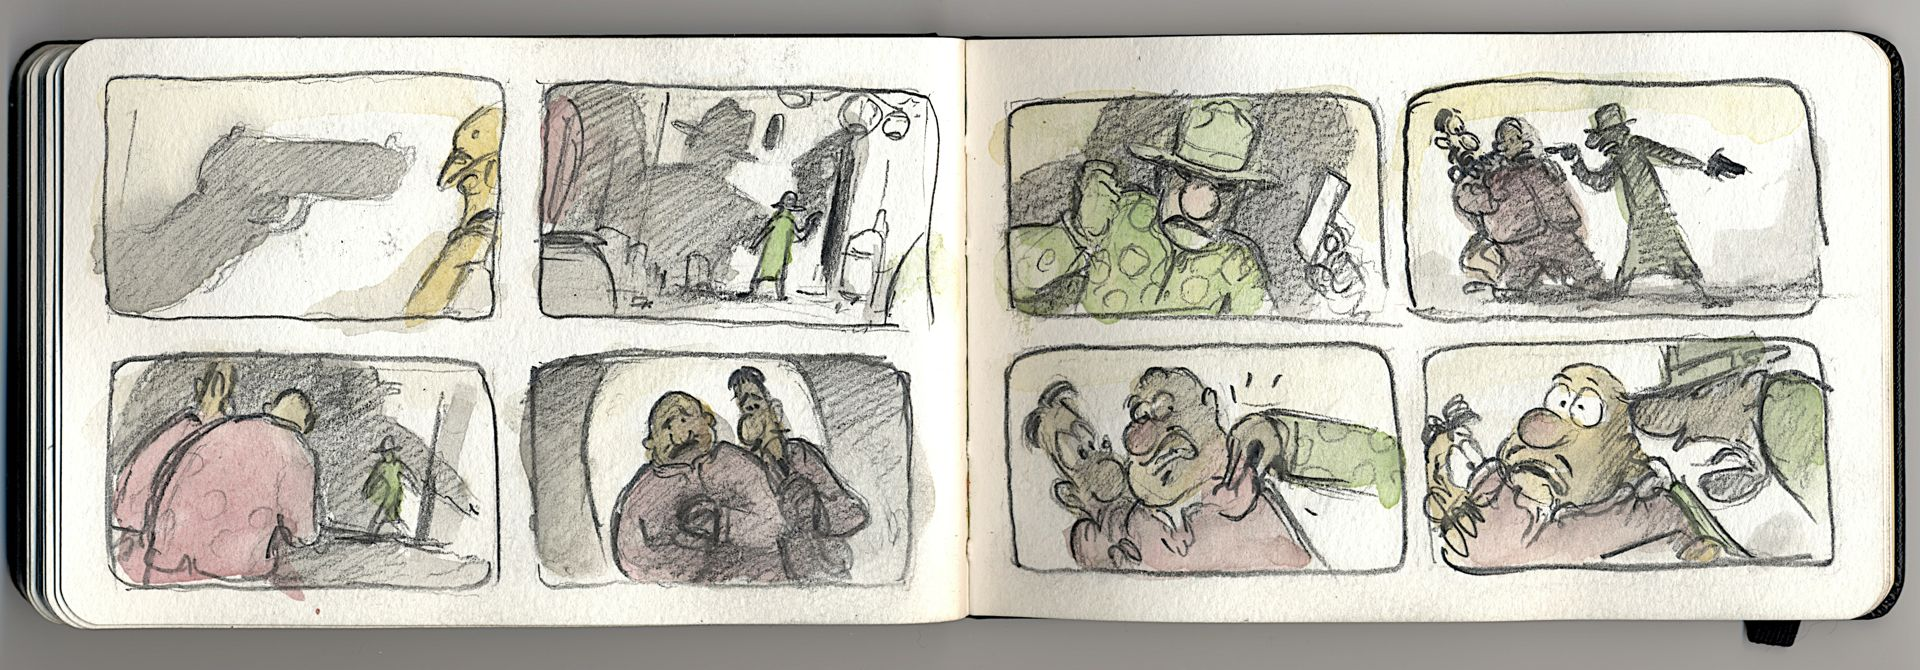 the badguys are always one step behind in this storyboard sequence.